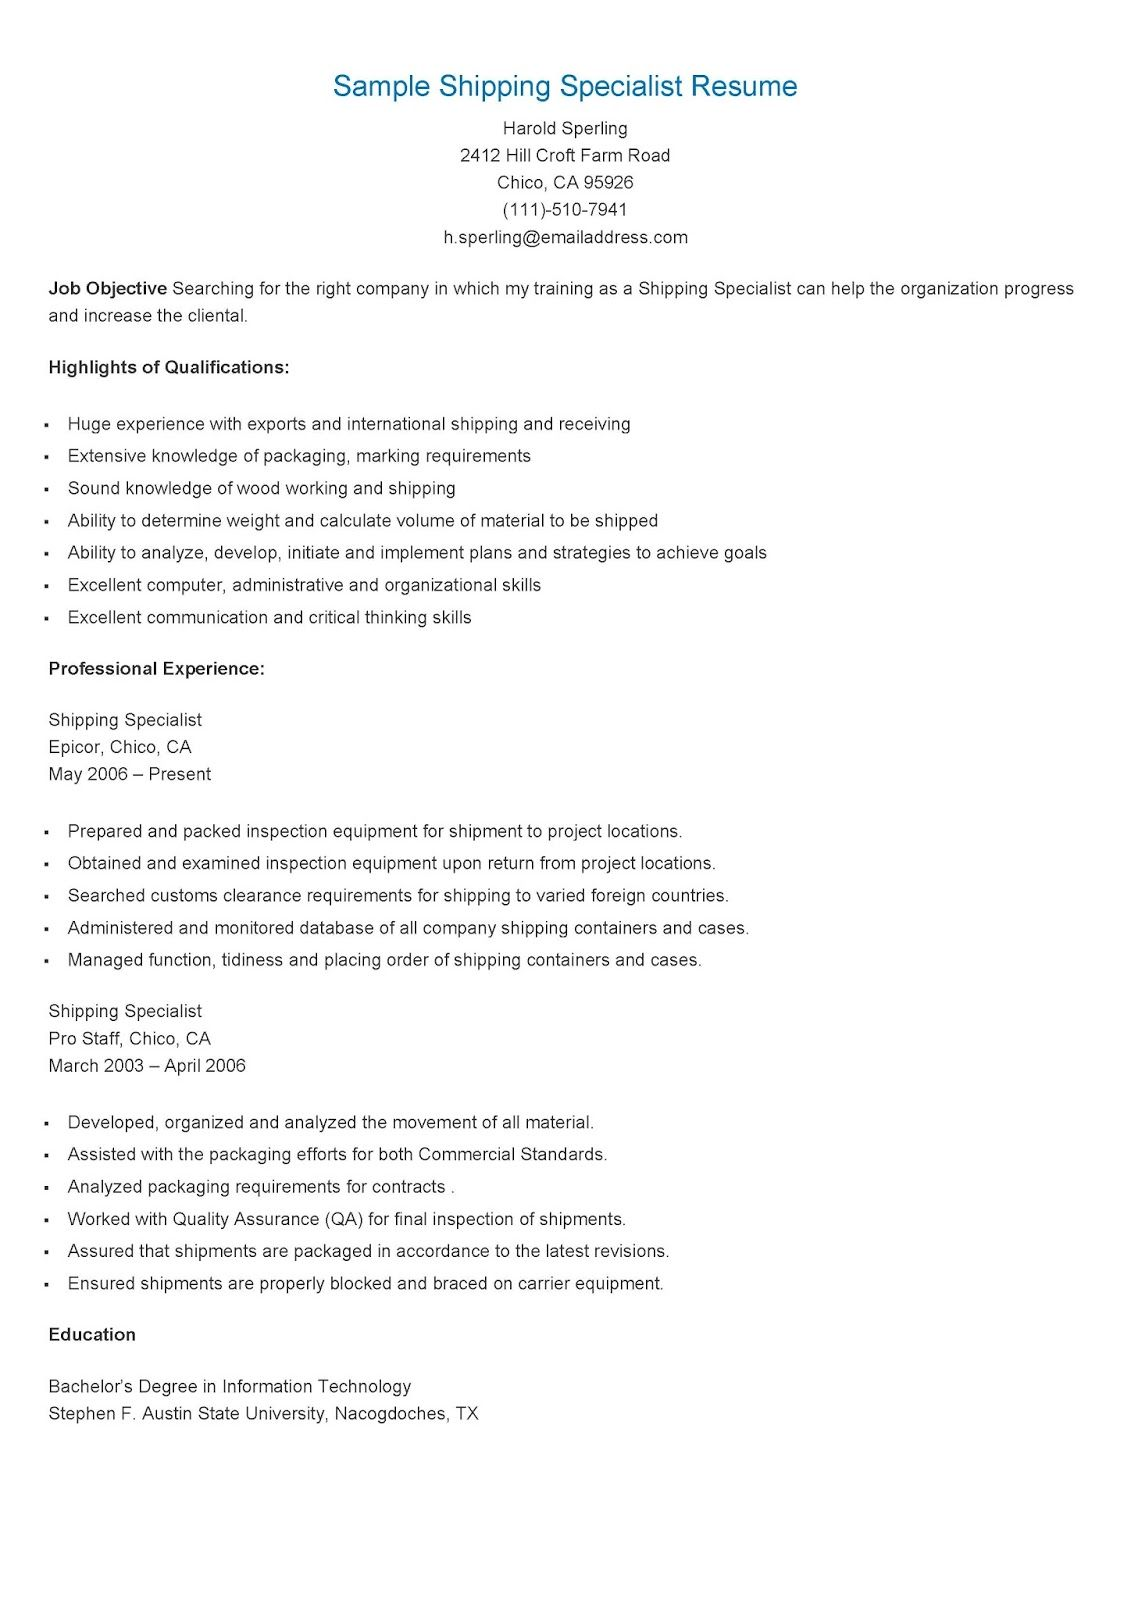 Sample Shipping Specialist Resume Resume Sample Resume Specialist